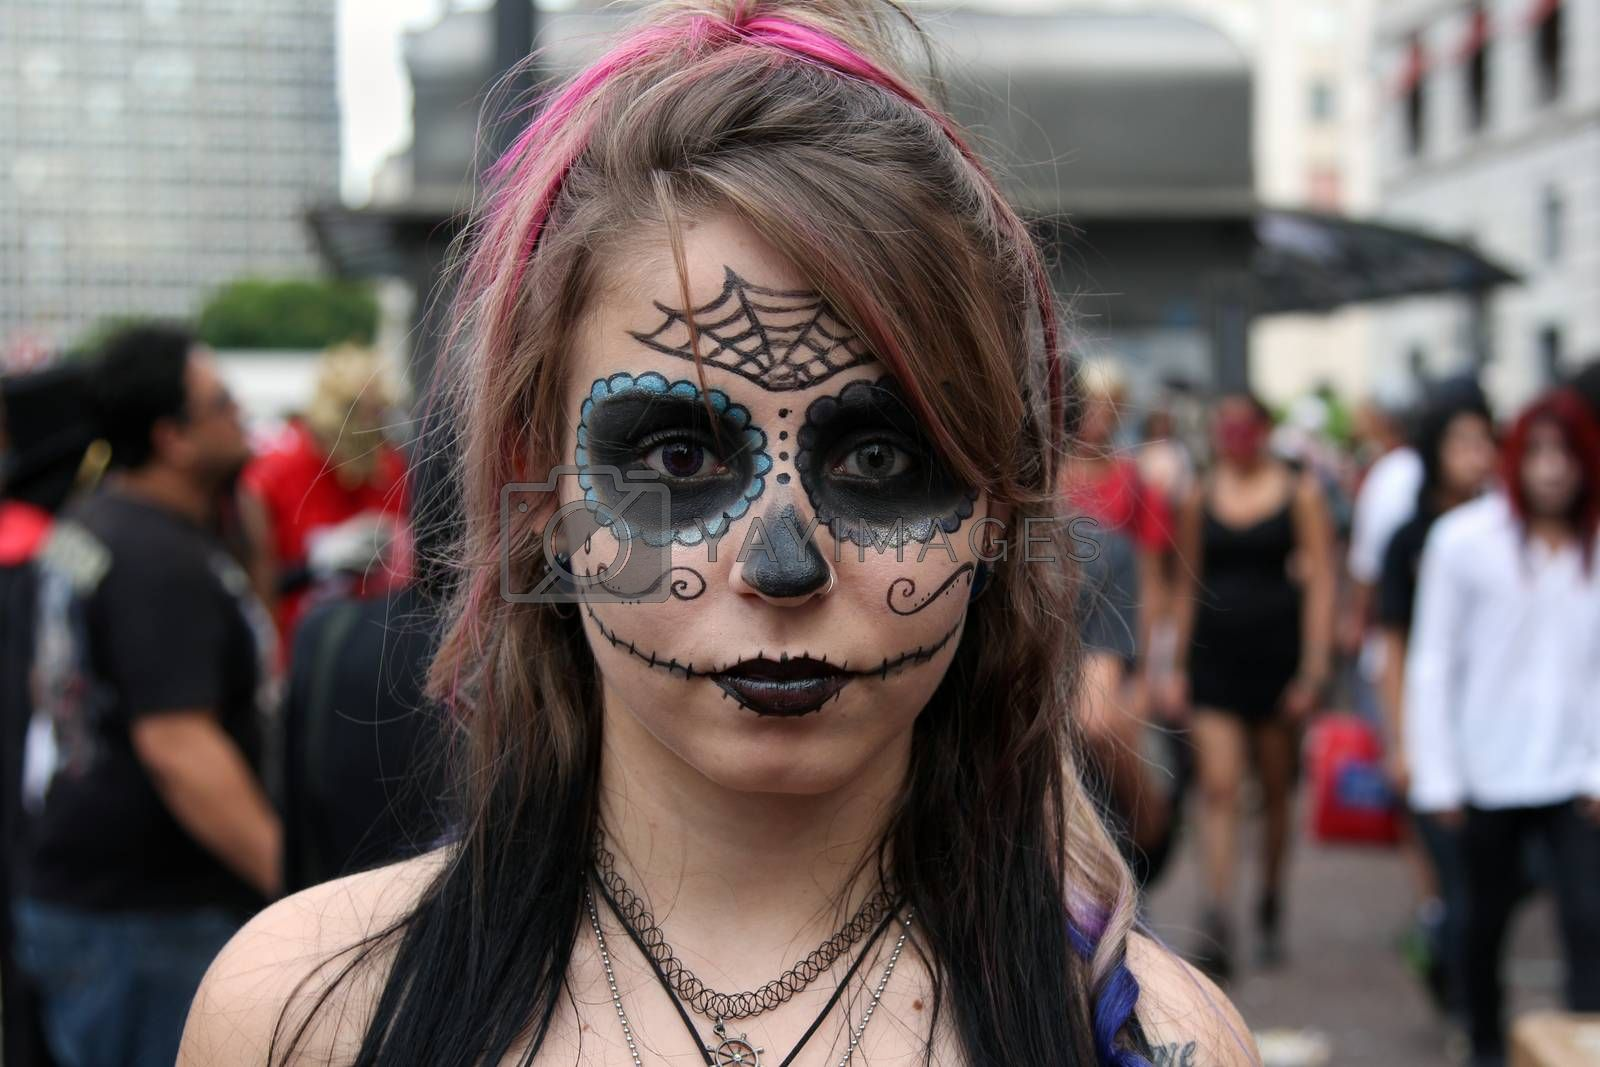 Sao Paulo, Brazil November 11 2015: An unidentified beautiful girl in traditional costumes in the annual event Zombie Walk in Sao Paulo Brazil.